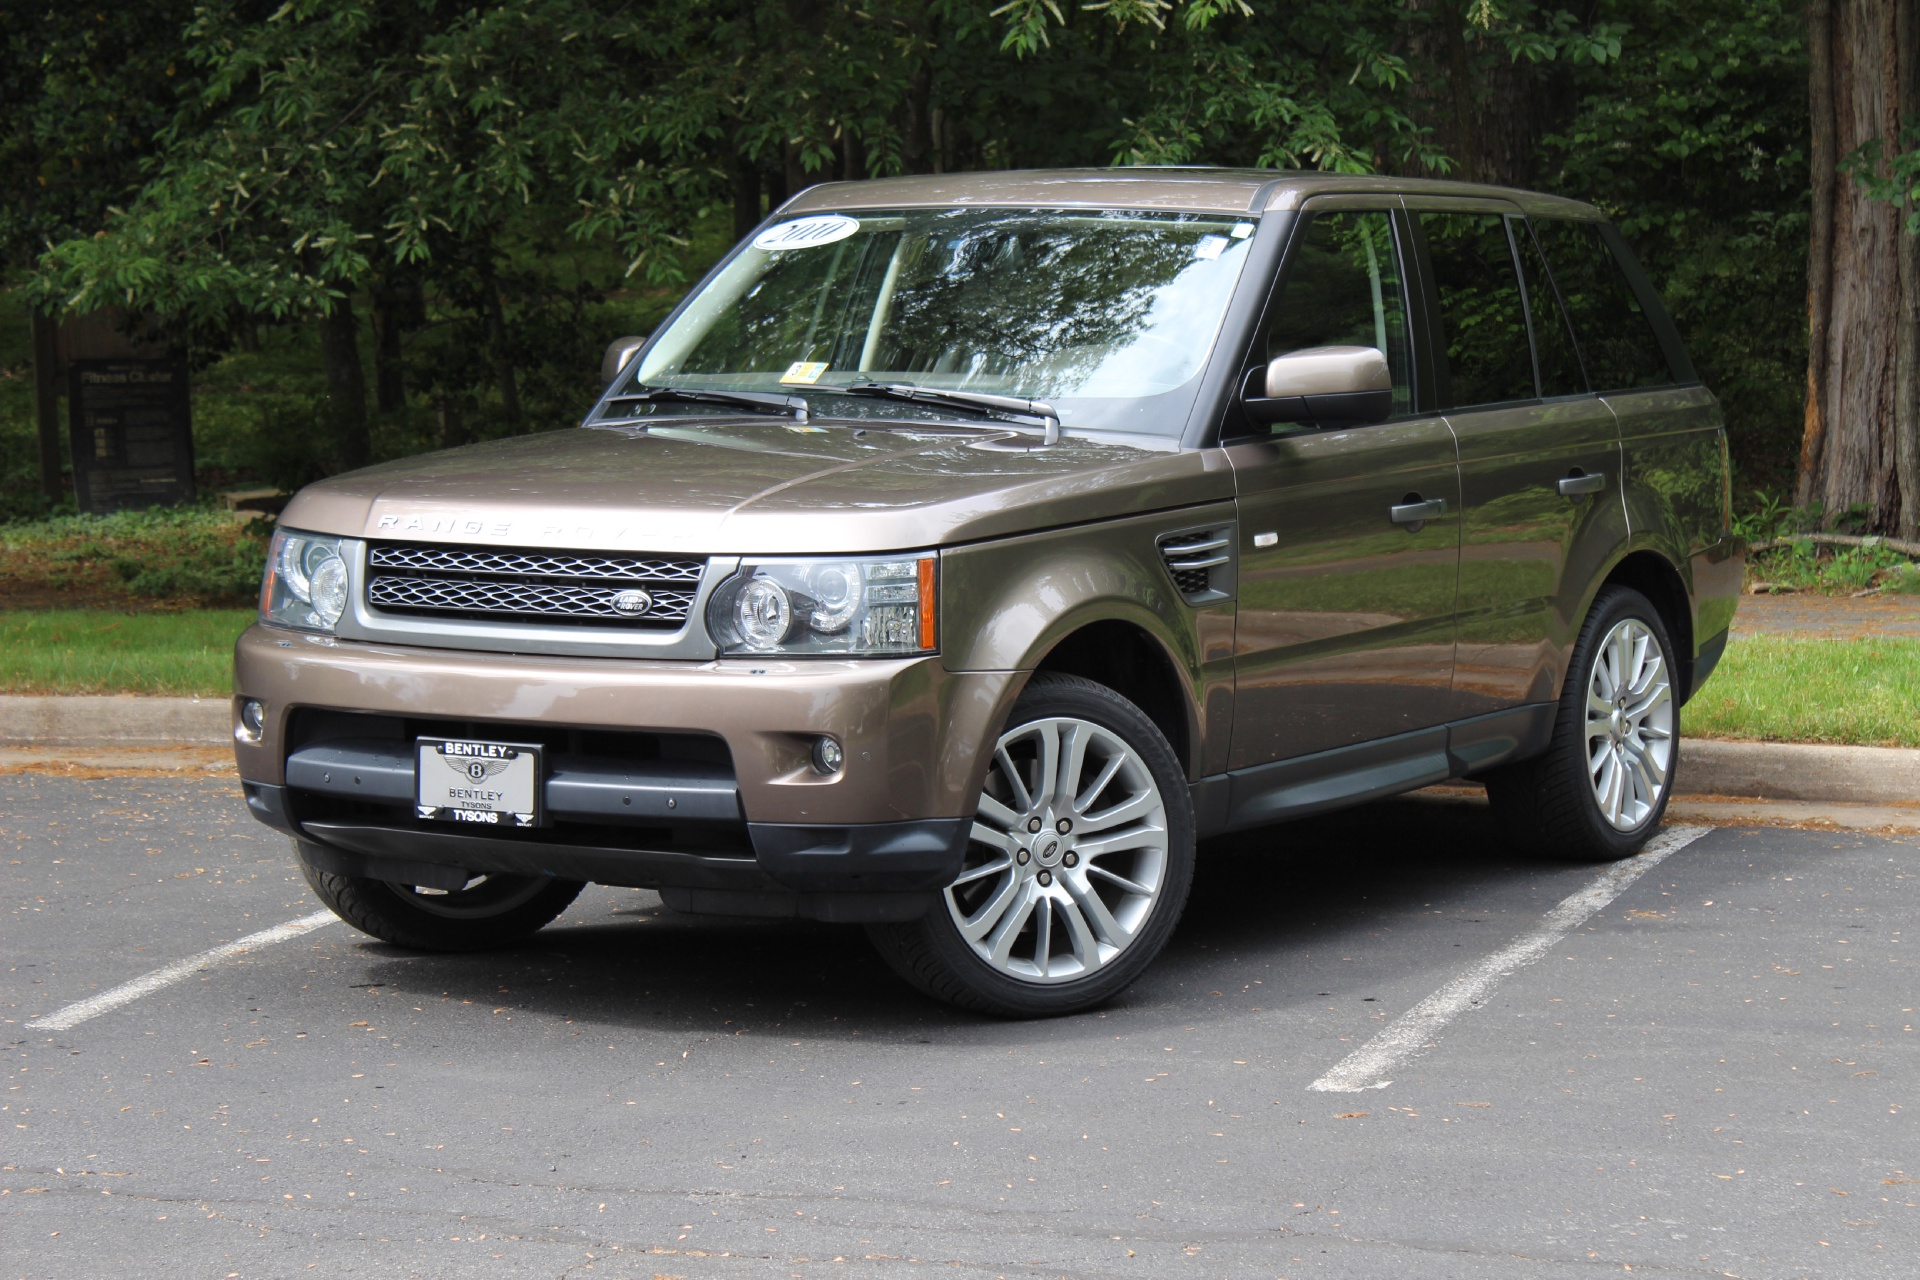 2010 land rover range rover sport hse stock p256057 for sale near vienna va va land rover - Land rover garage near me ...